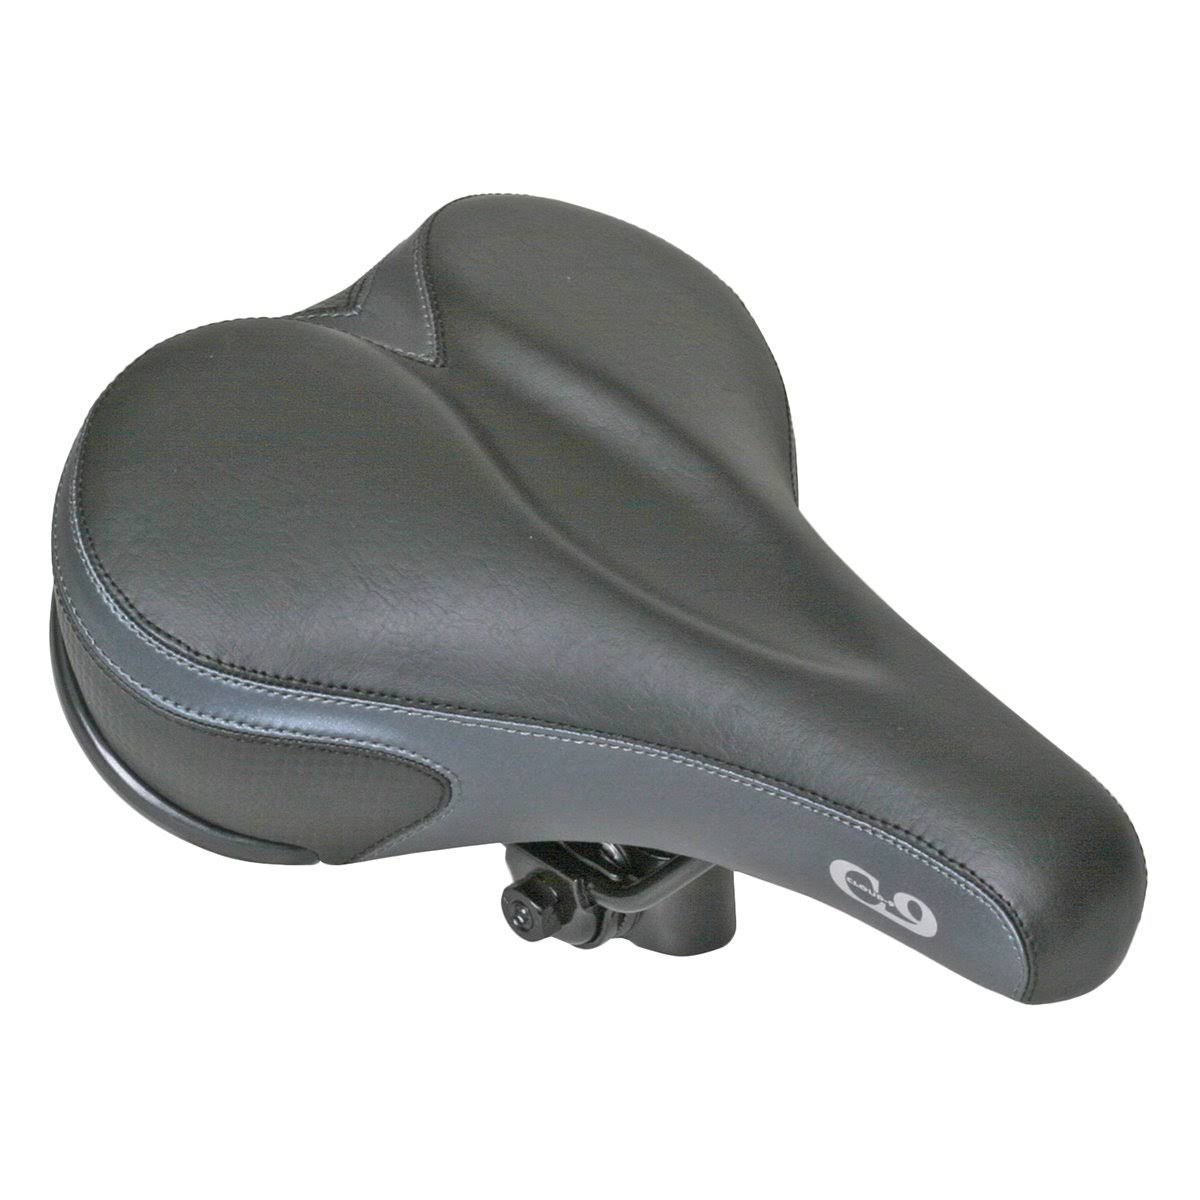 Sunlite Cloud-9 Men's Comfort Soft Touch Vinyl Wr Suspension Saddle